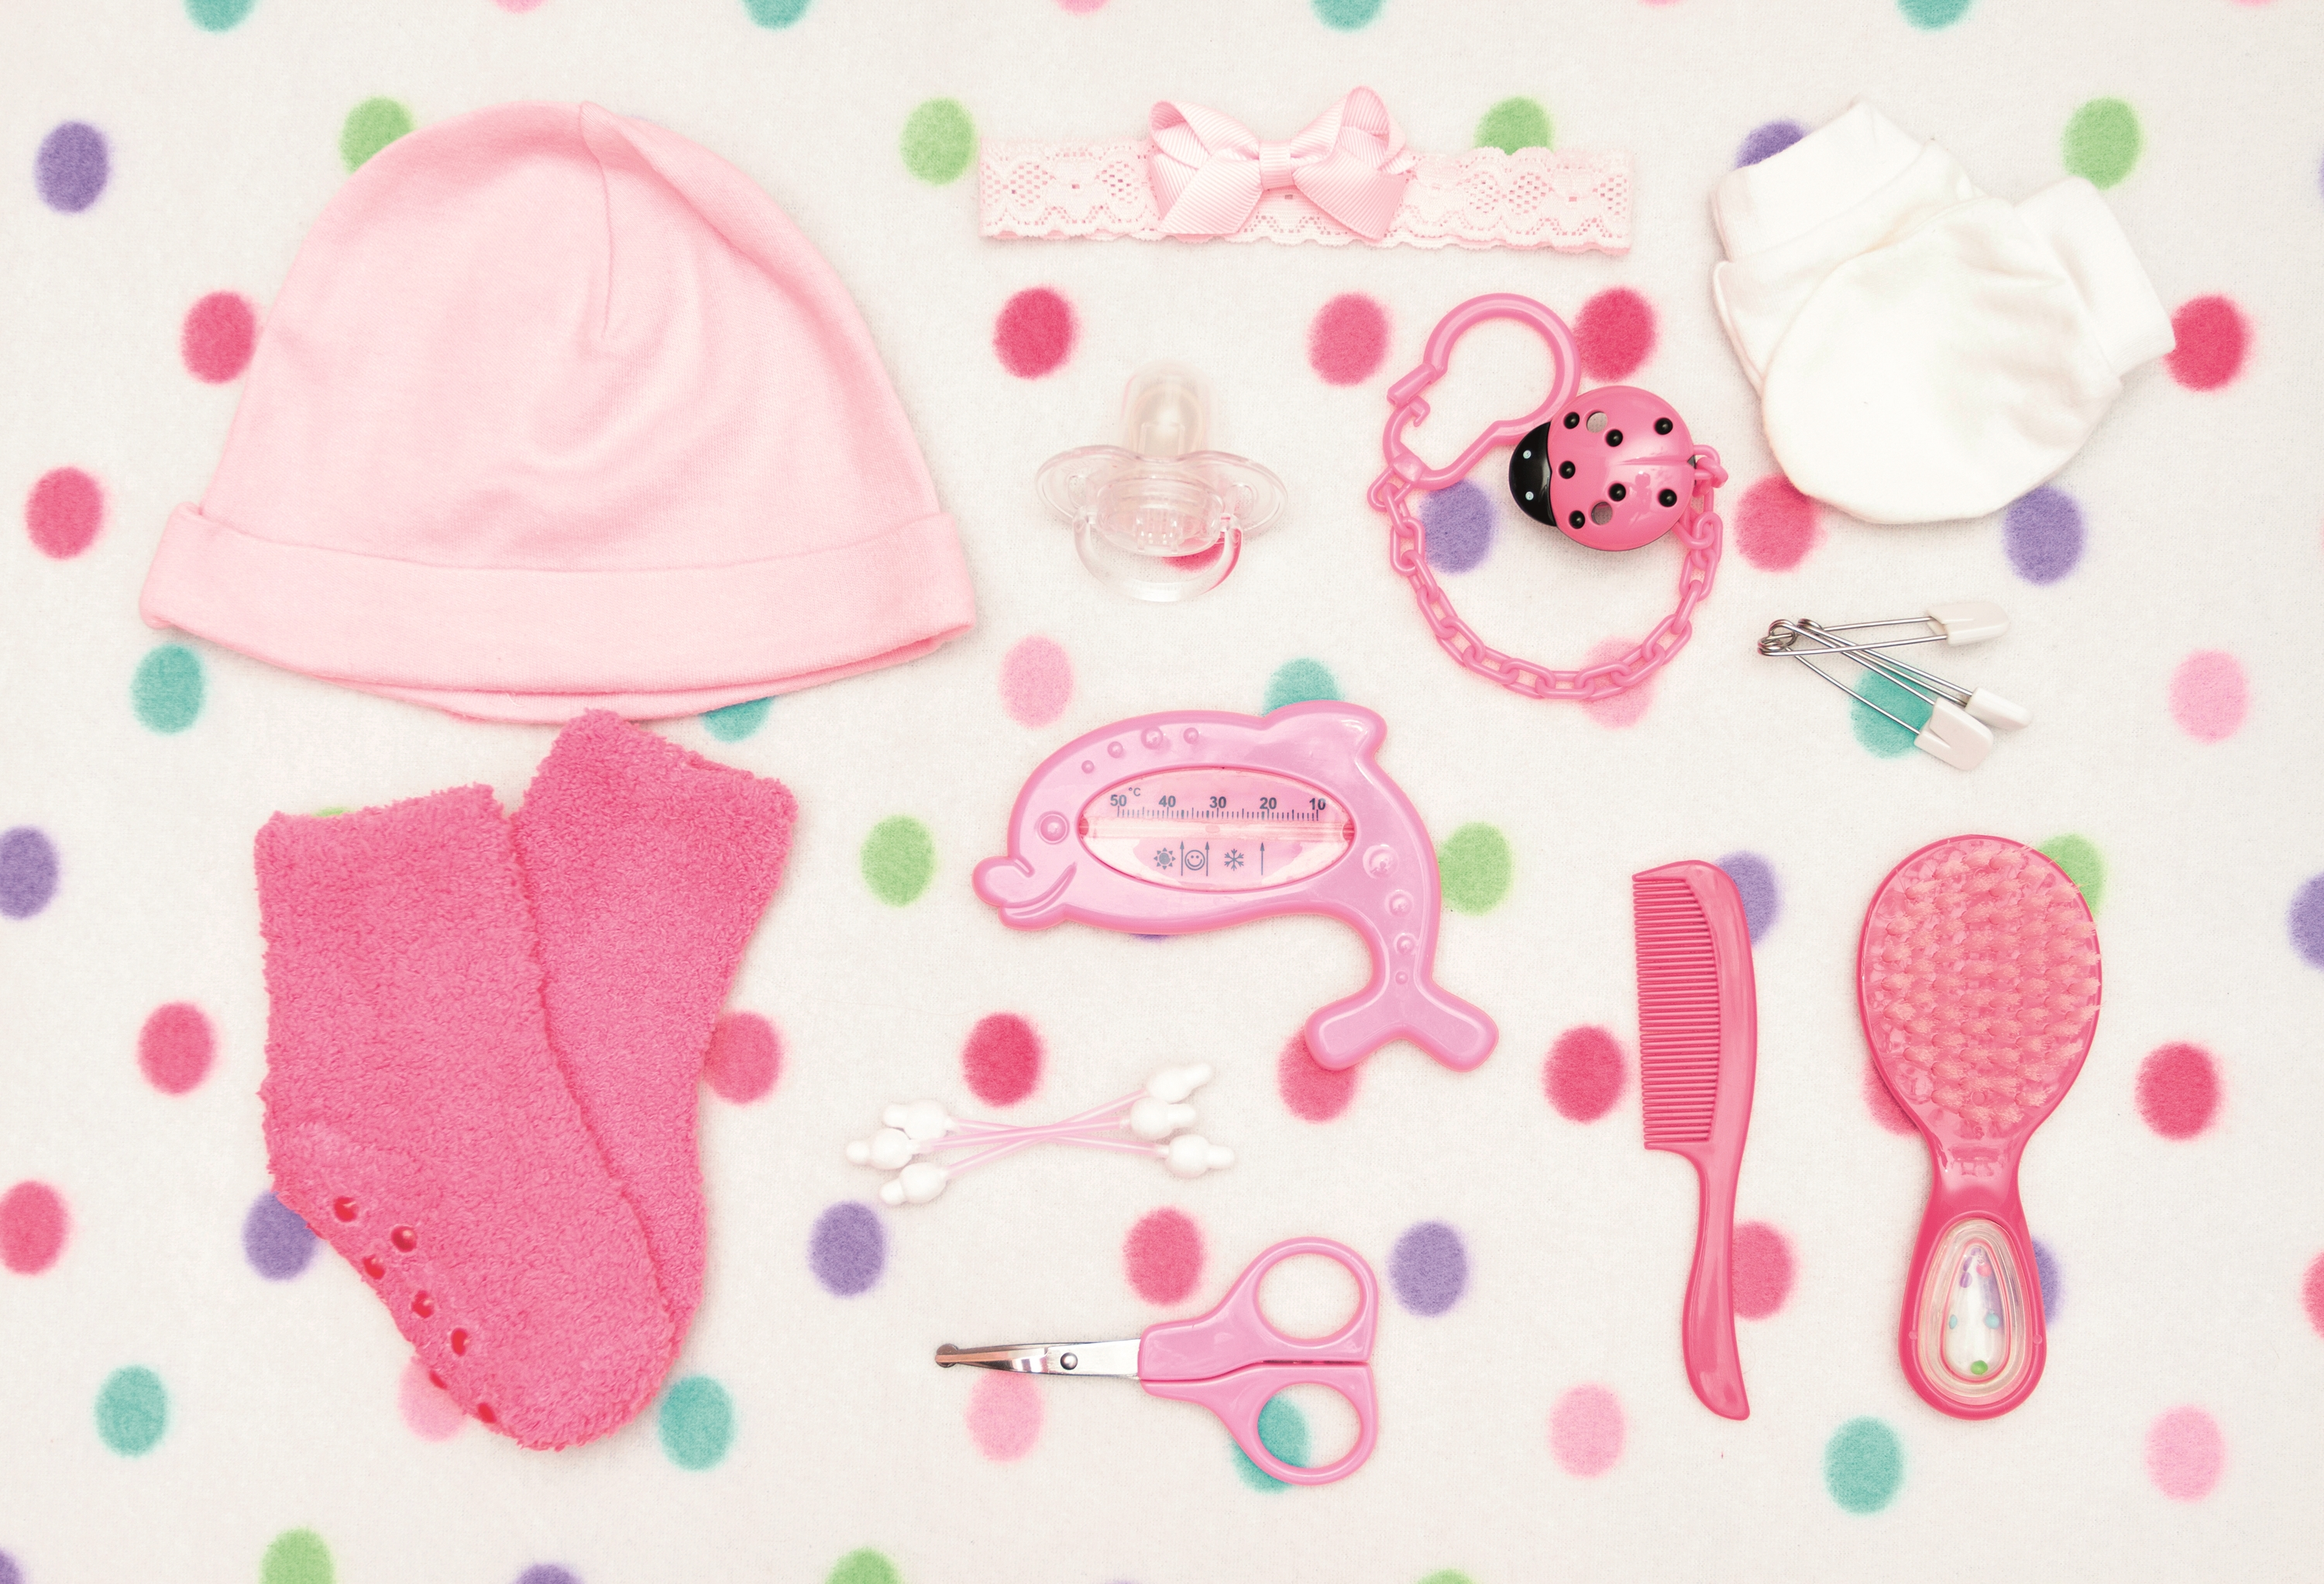 Pink kids items